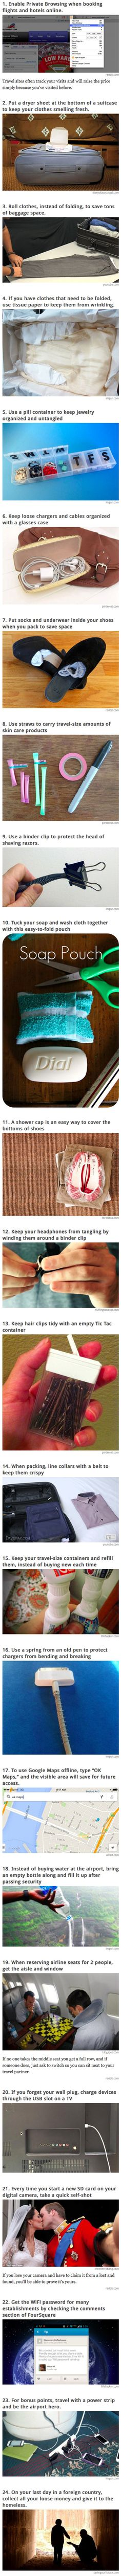 Before Going on Your Next Trip, Here Are Cool Travel Hacks That Might Come in Handy